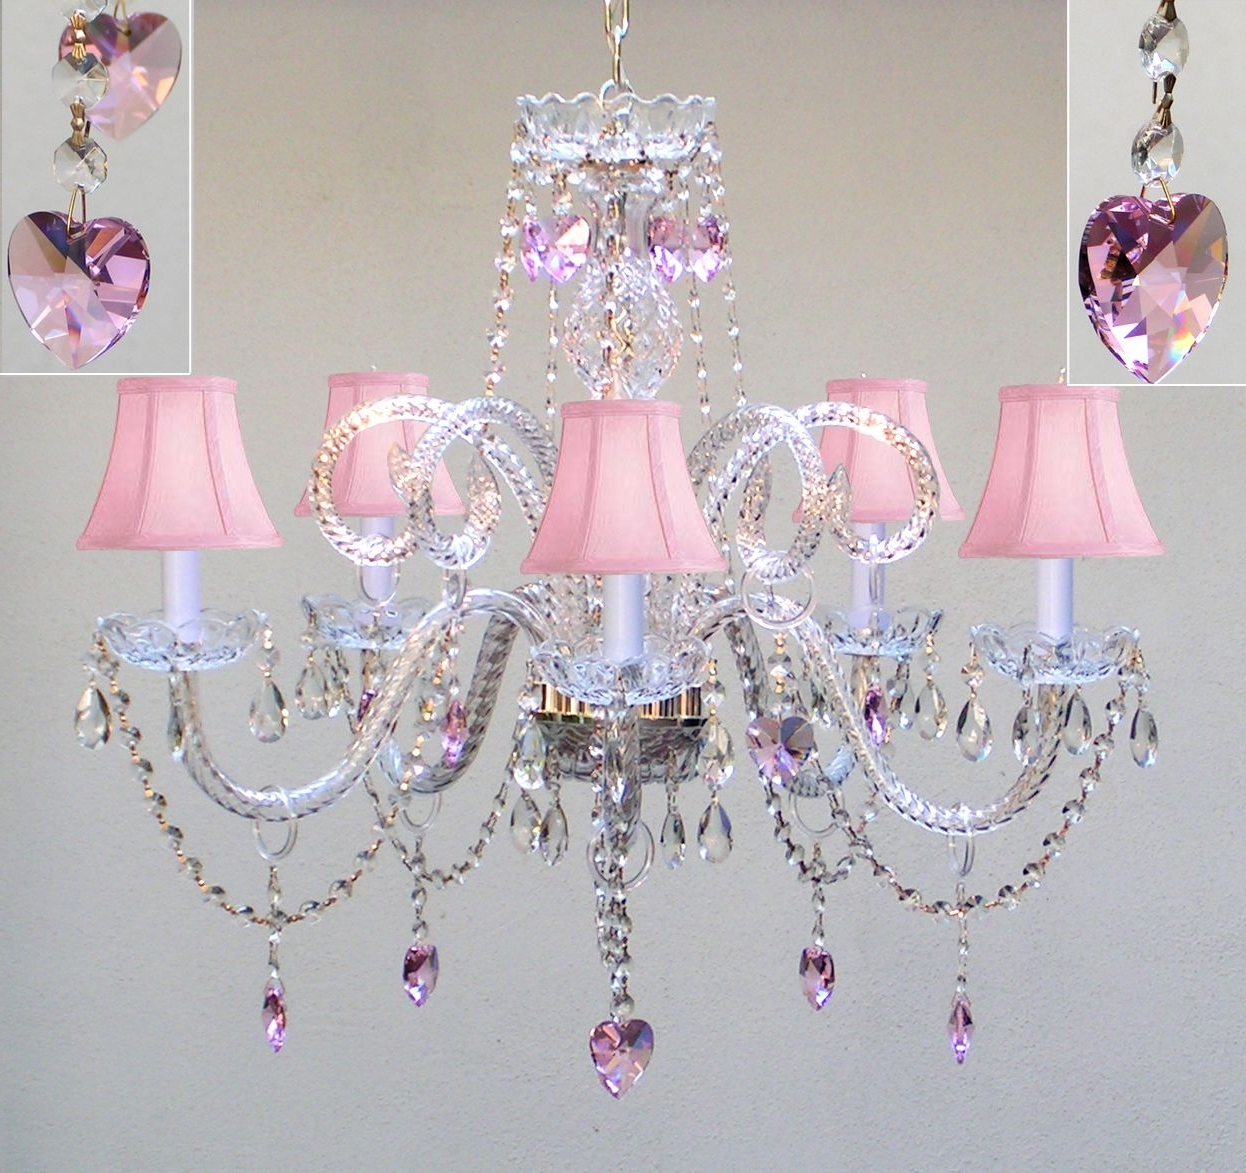 2018 For A Little Girls Room! A46 Sc/387/5/pinkhearts Chandeliers Inside Purple Crystal Chandeliers (View 1 of 15)